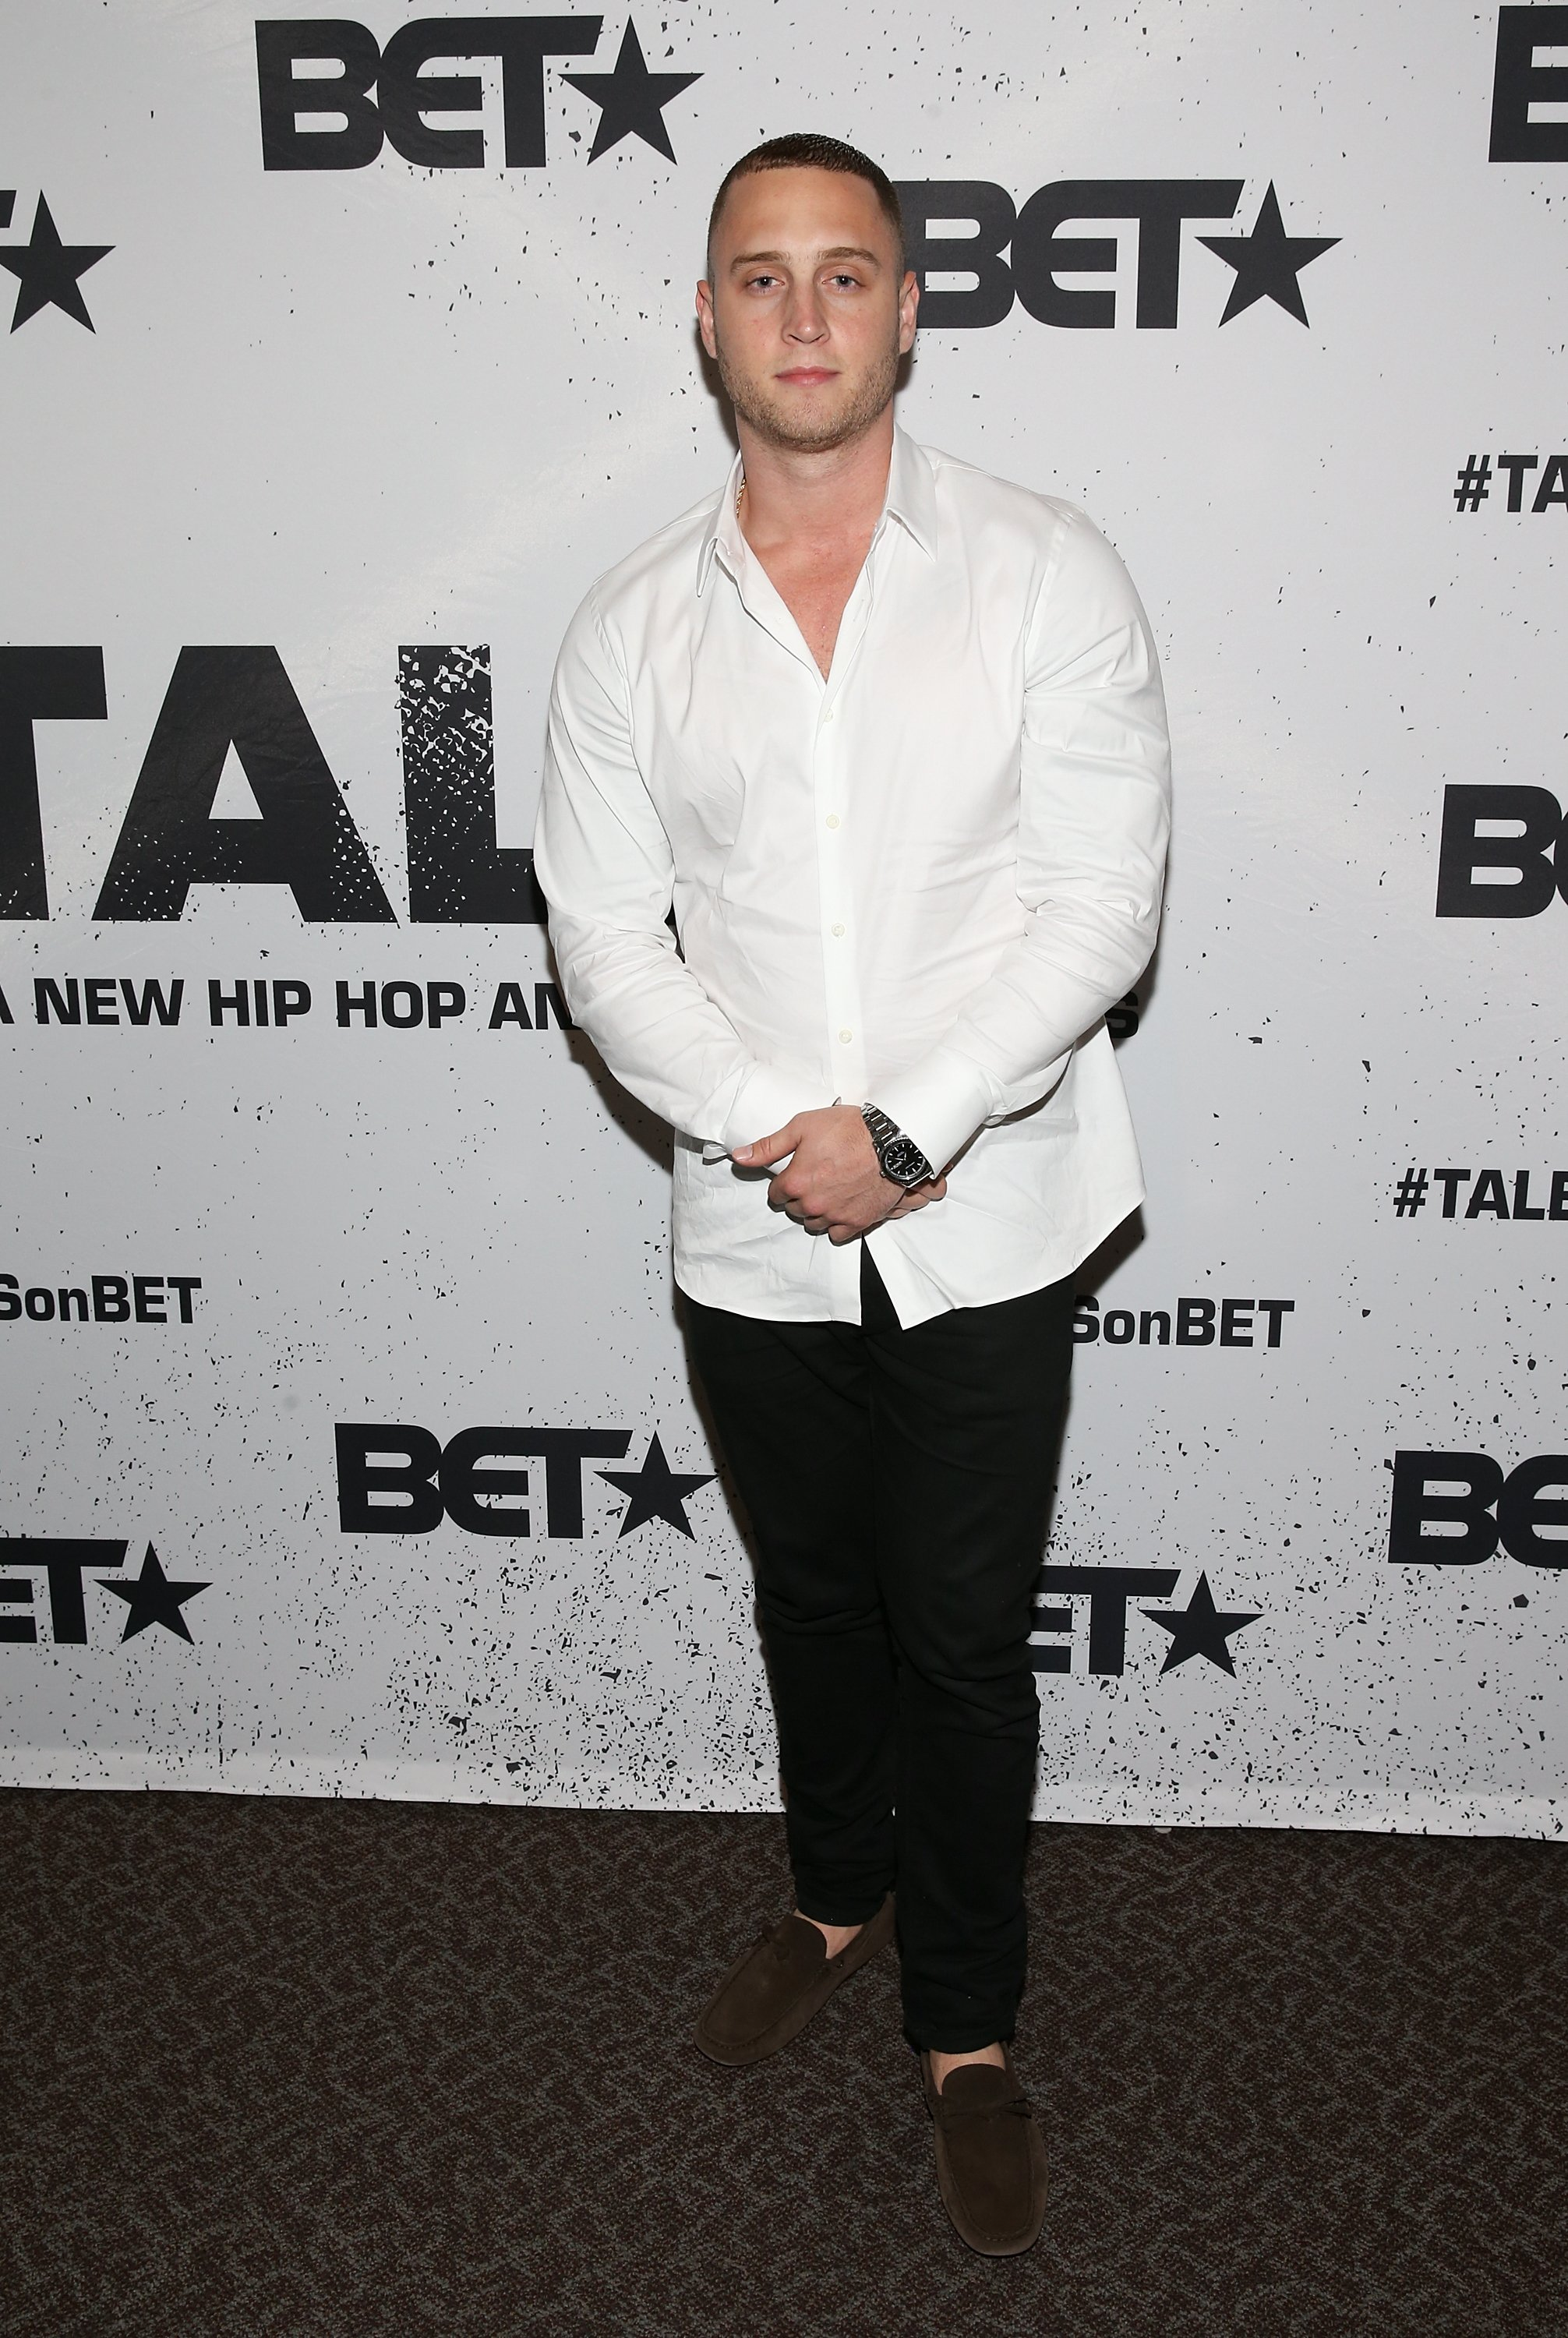 """Chet Hanks attends the Screening of the BET Series """"Tales"""" at DGA Theater on June 26, 2017 in Los Angeles, California   Photo: GettyImages"""